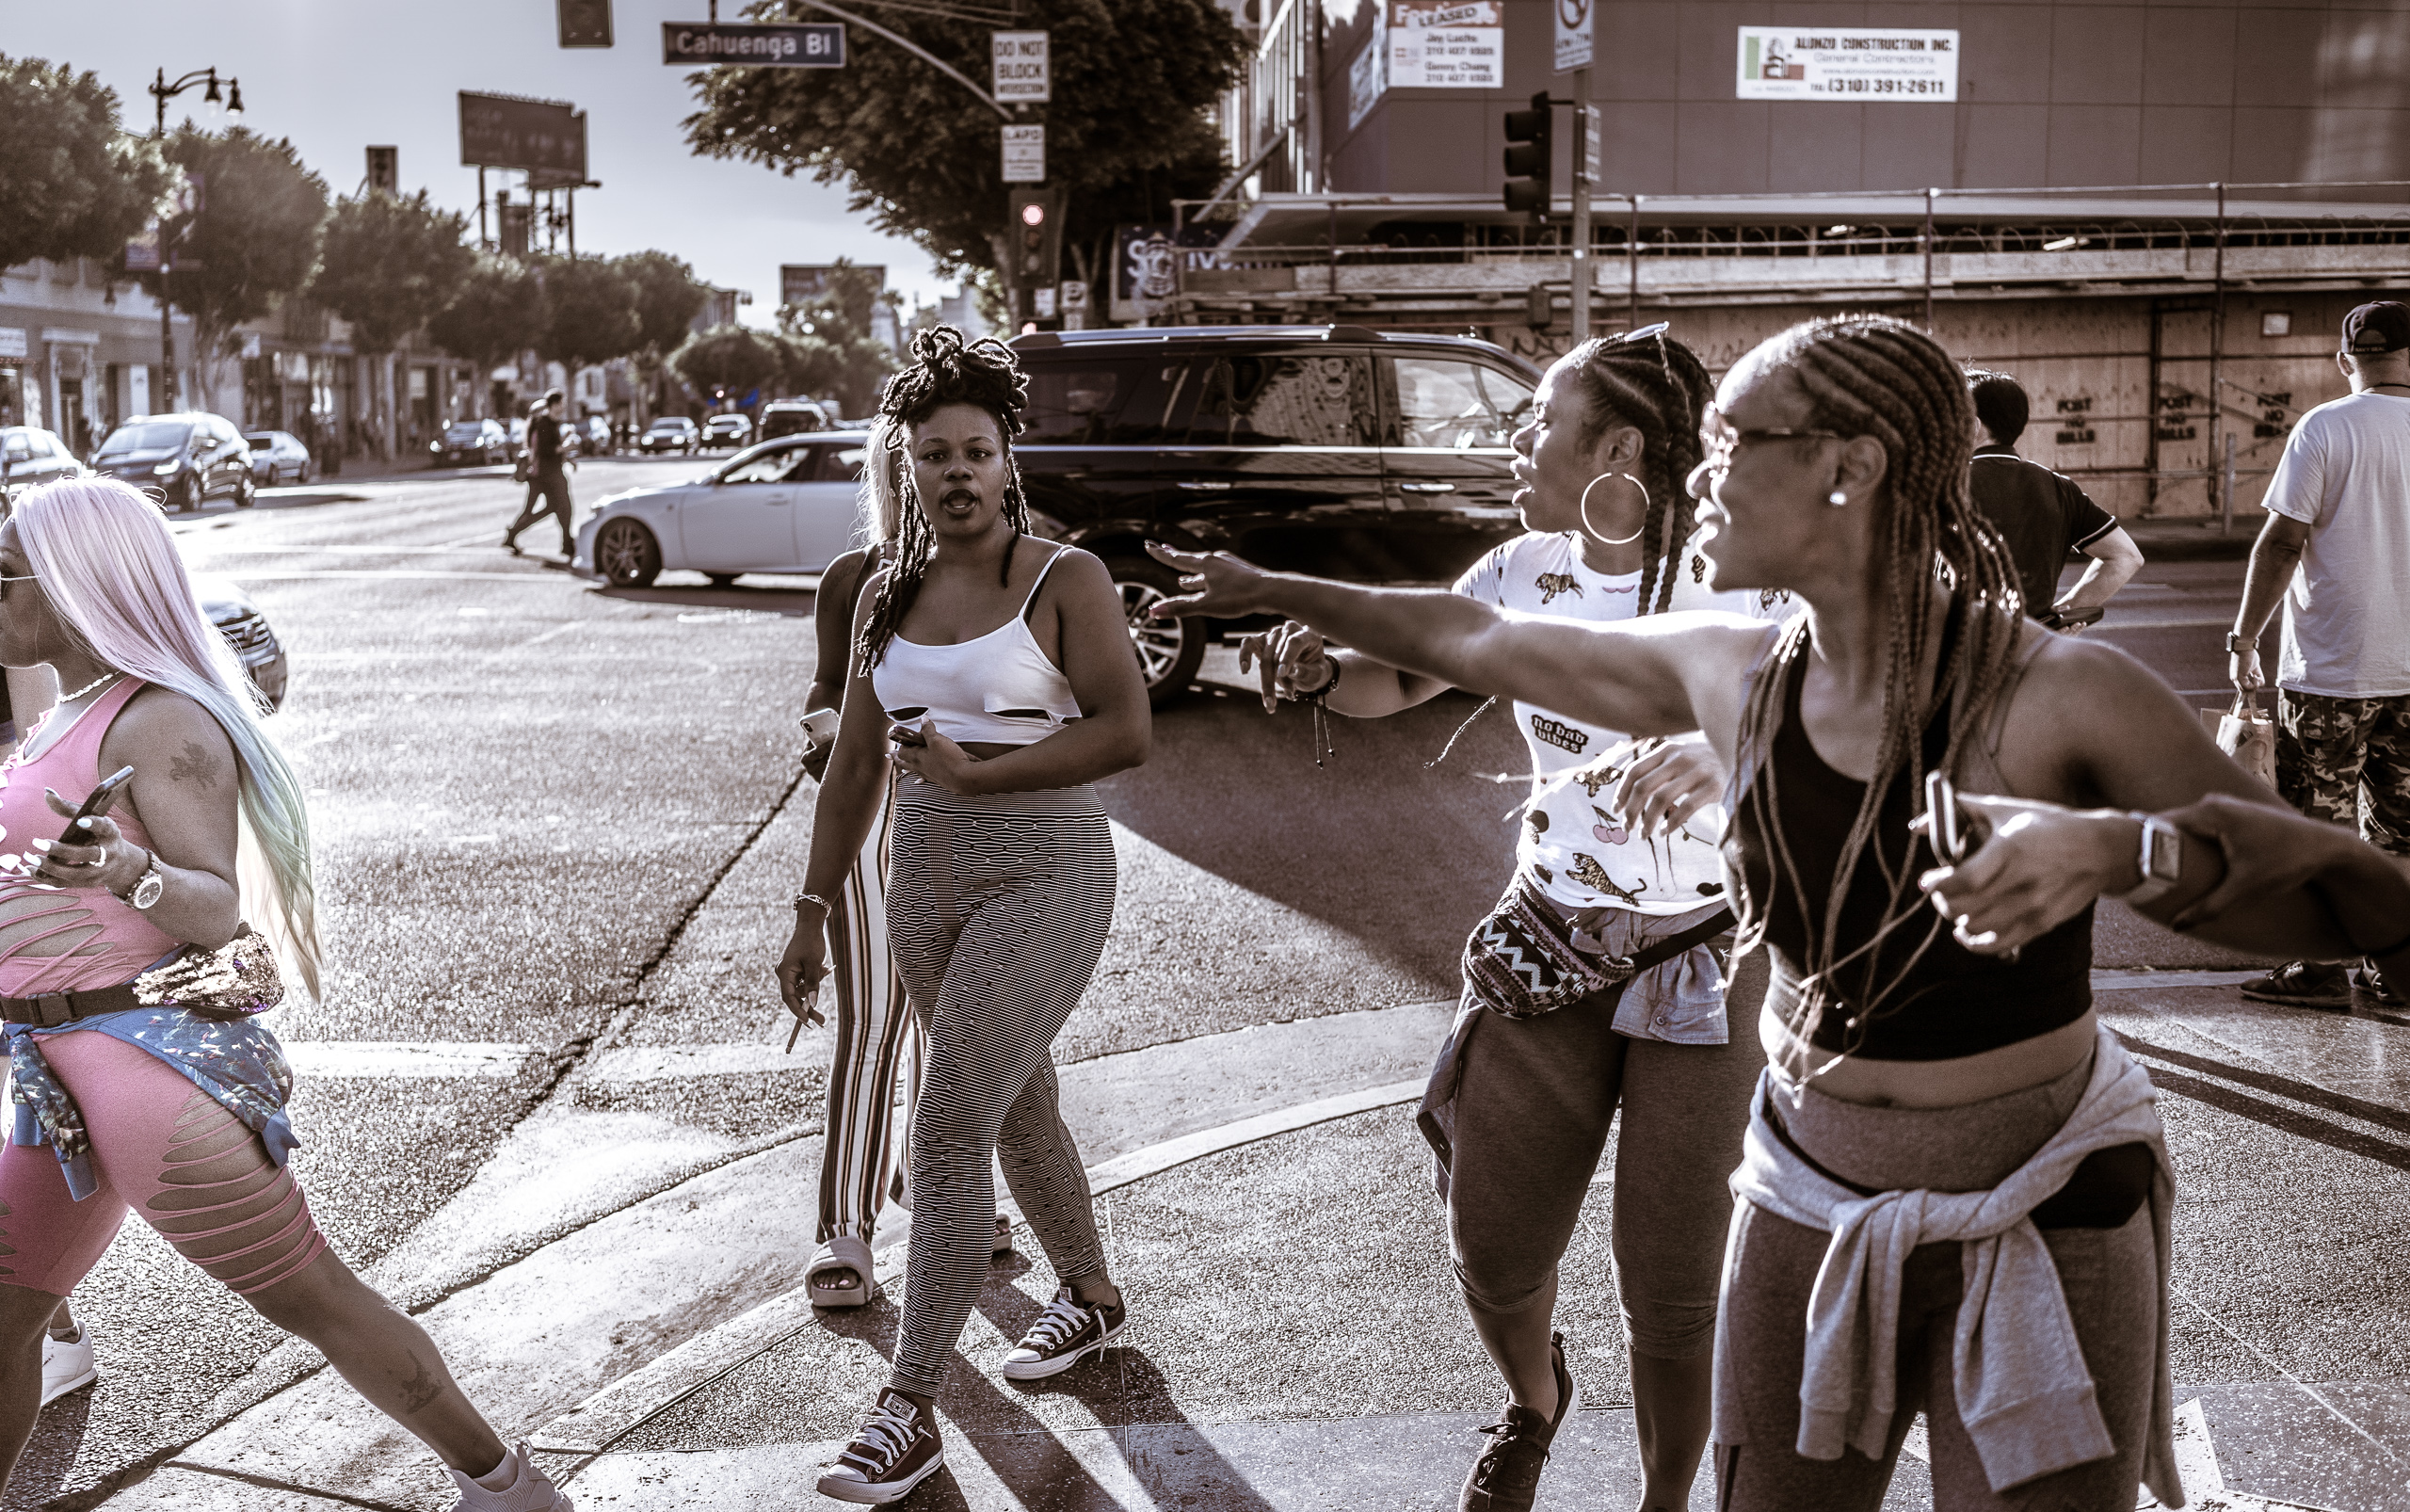 6 women on the corner of Hollywood & Cahuenga move in different directions. Two in the center face the camera as other move off as though a meetup has ended